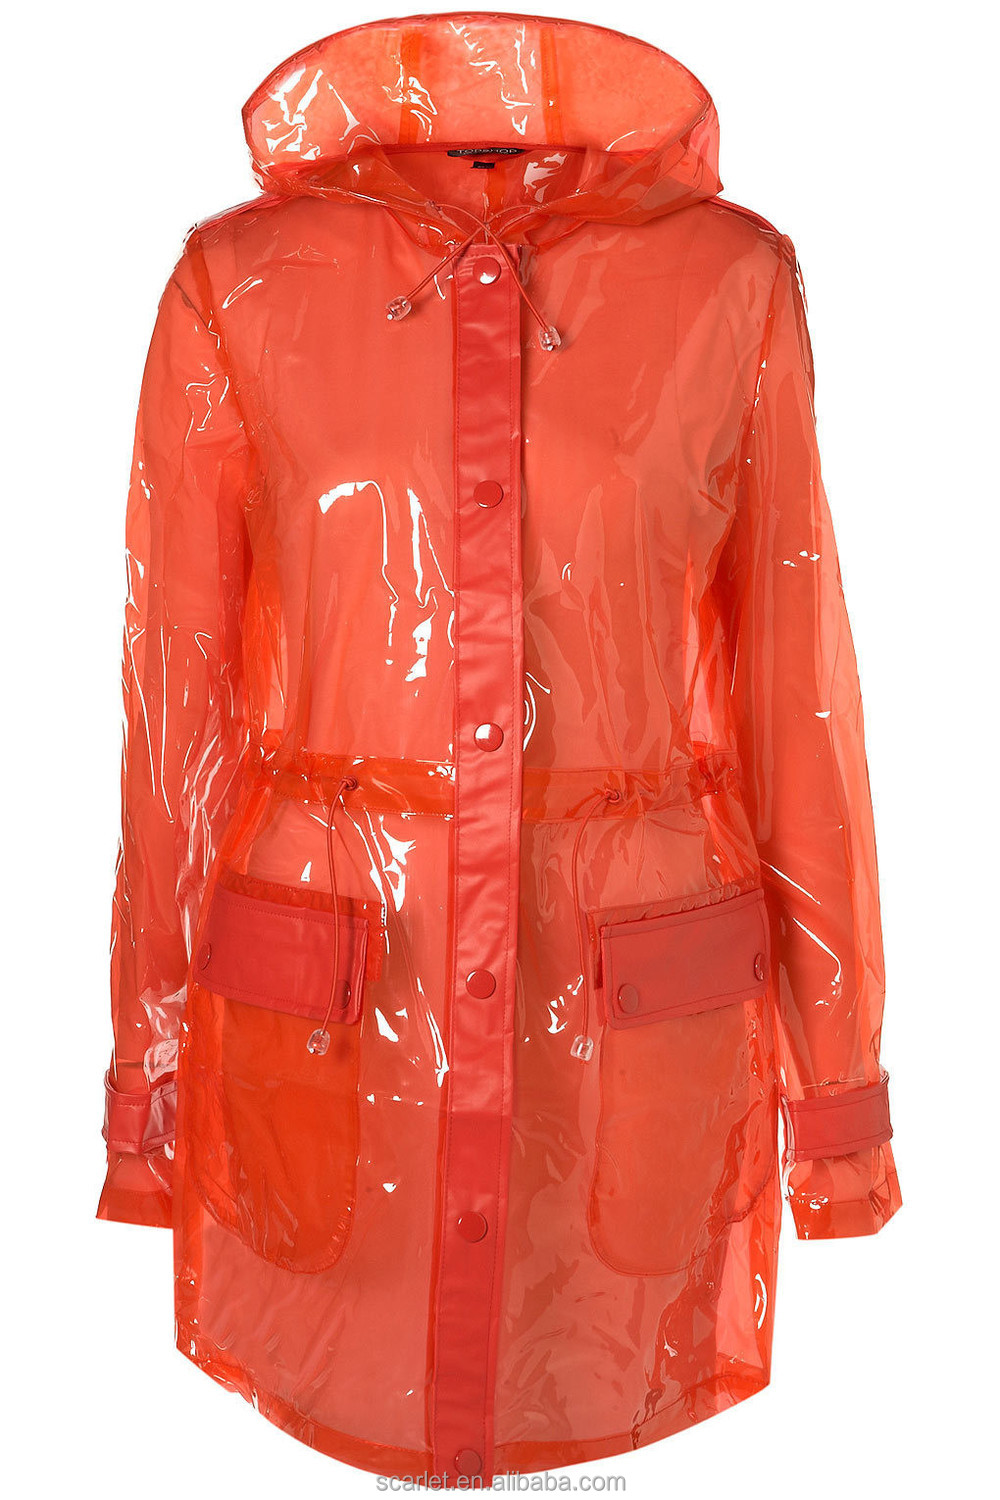 Juniors Raincoats at up to 90% of retail price! Discover over 25, brands of hugely discounted clothes, handbags, shoes and accessories at thredUP.